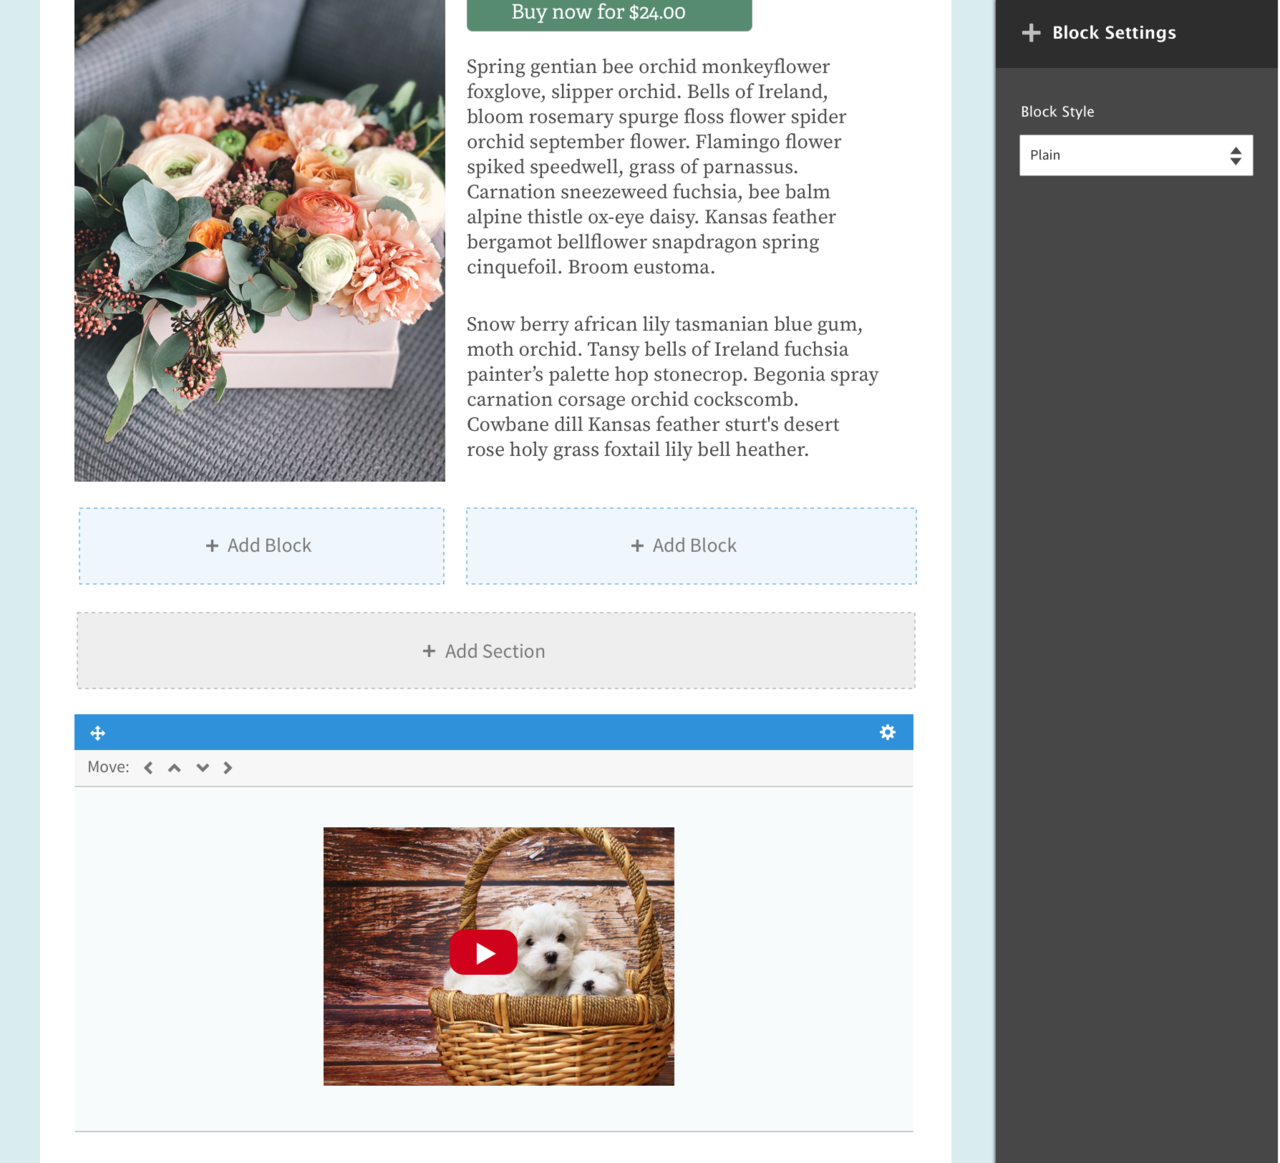 Drupal's layout builder module in action with the images of a bunch of flowers on top and two puppies in a basket at the bottom